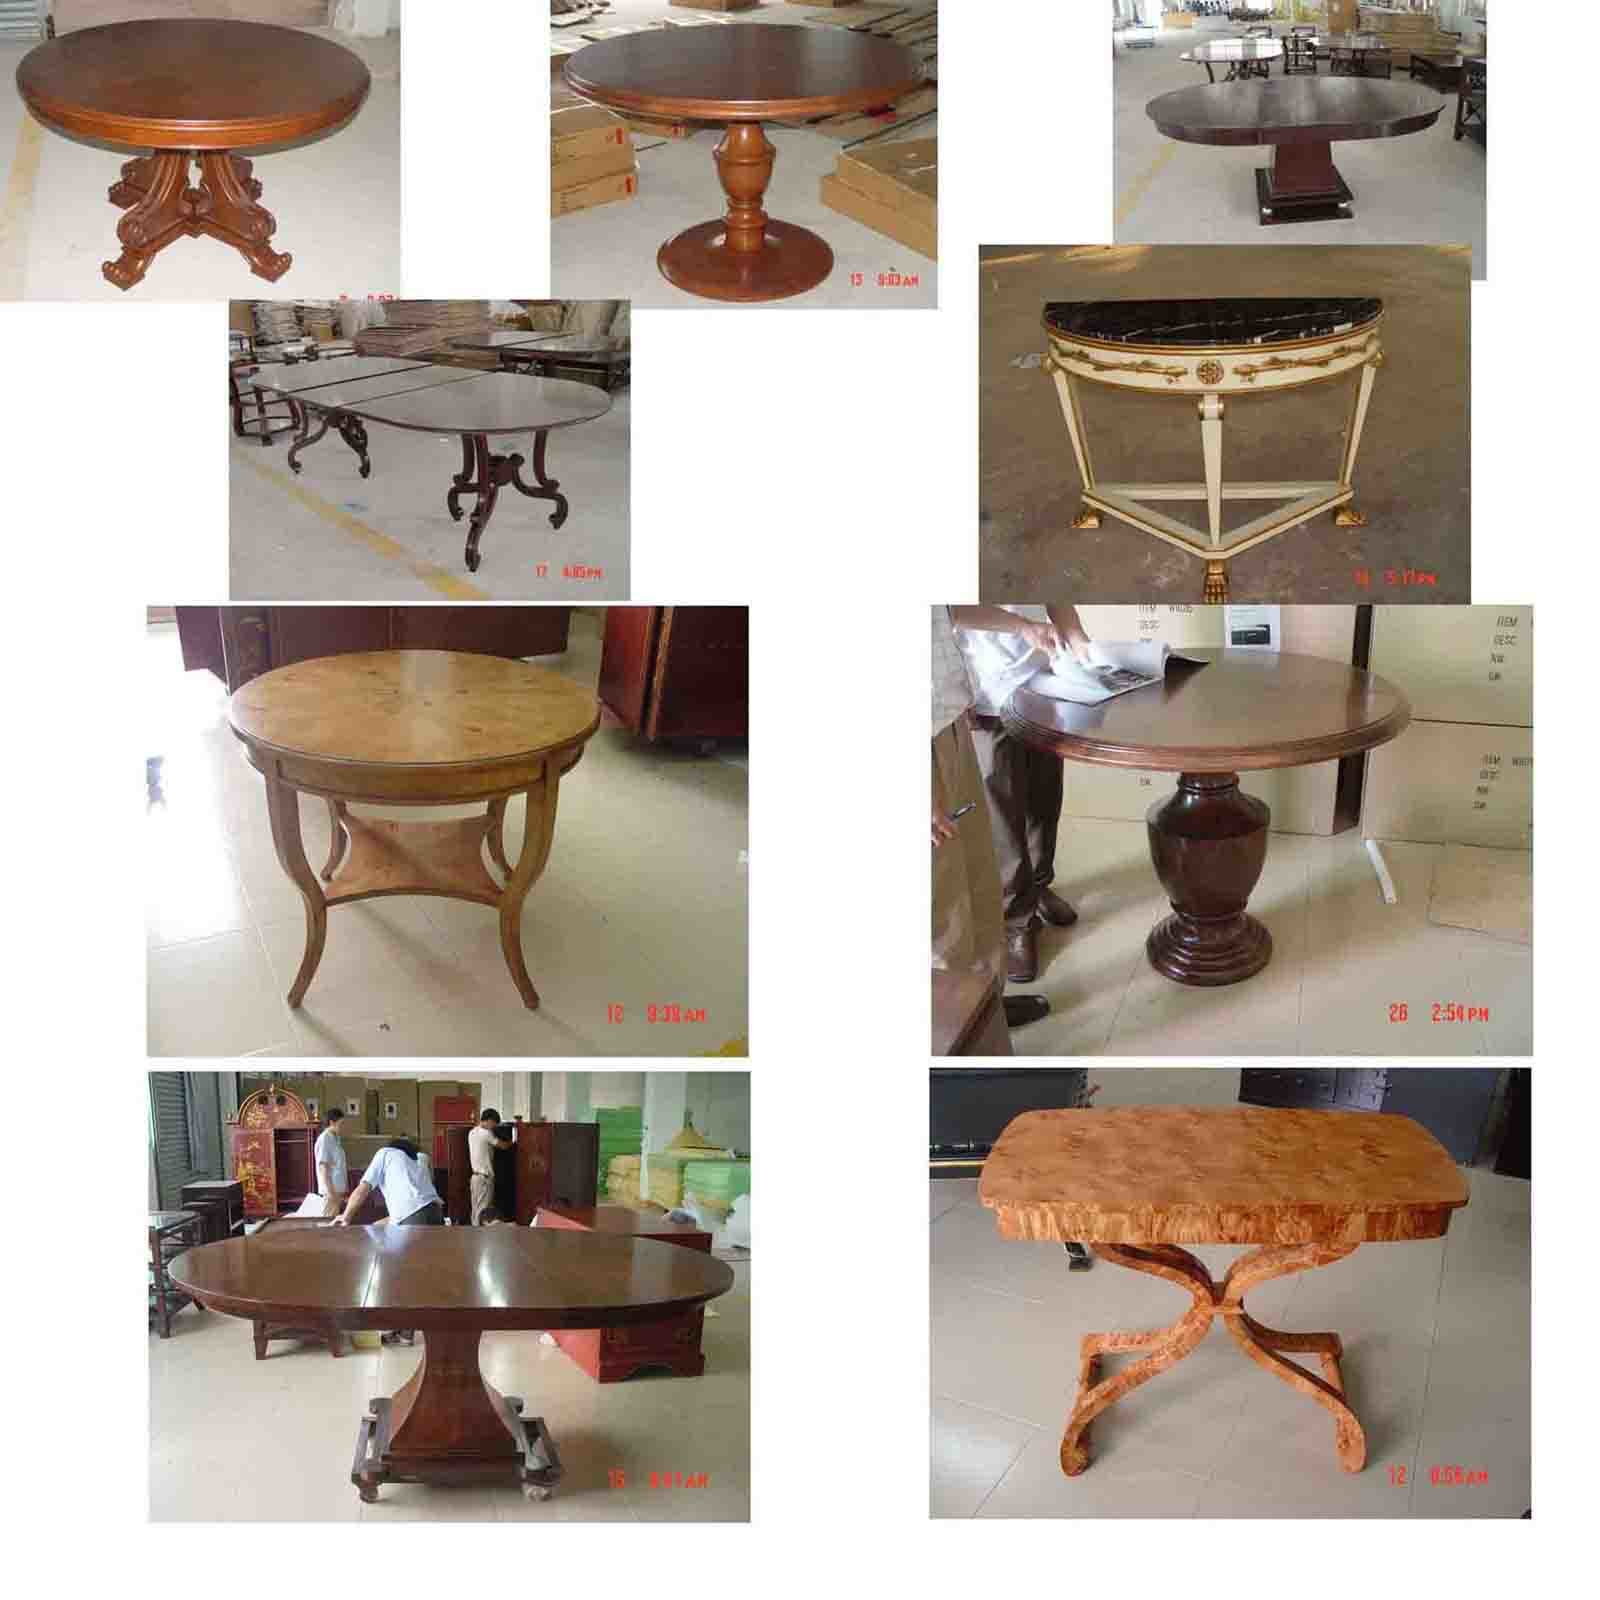 Marvelous unusual dining tables photos designs dievoon for Unusual tables